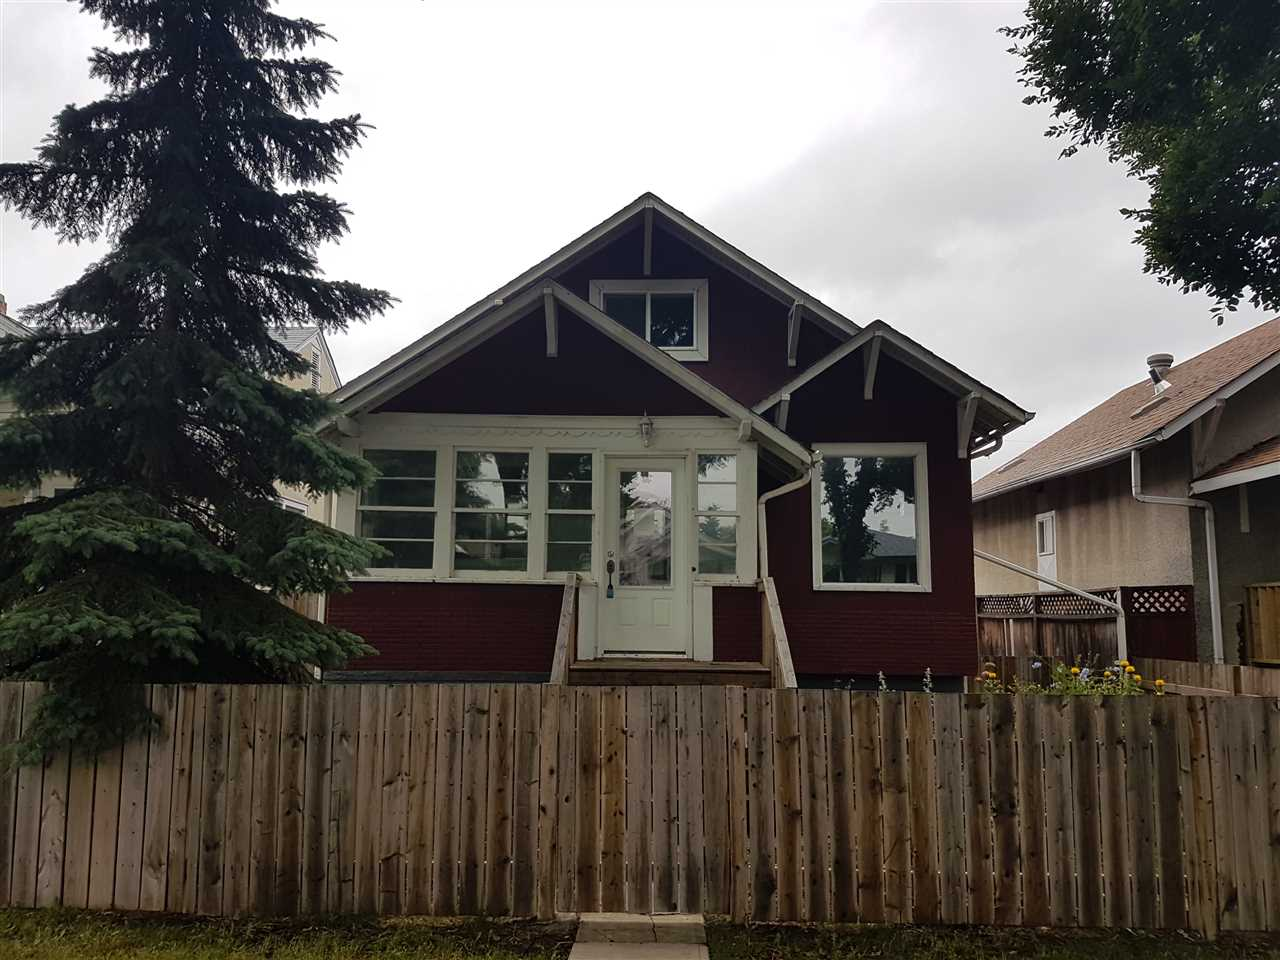 Main Photo: 11417 87 st in Edmonton: Zone 05 House for sale : MLS® # E4074933